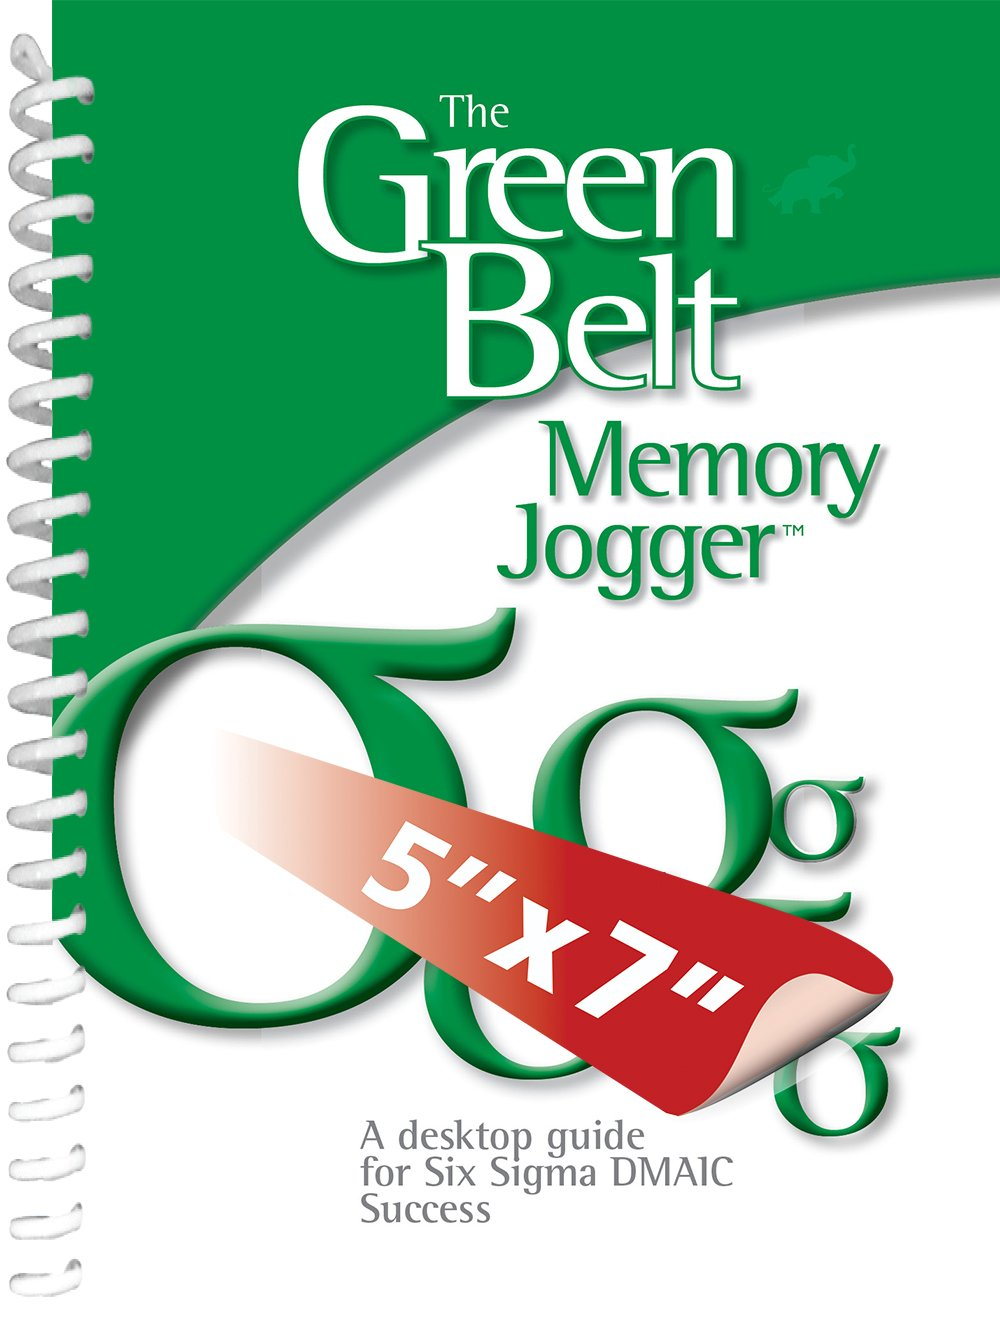 The Green Belt Memory Jogger: A Pocket Guide for Six SIGMA